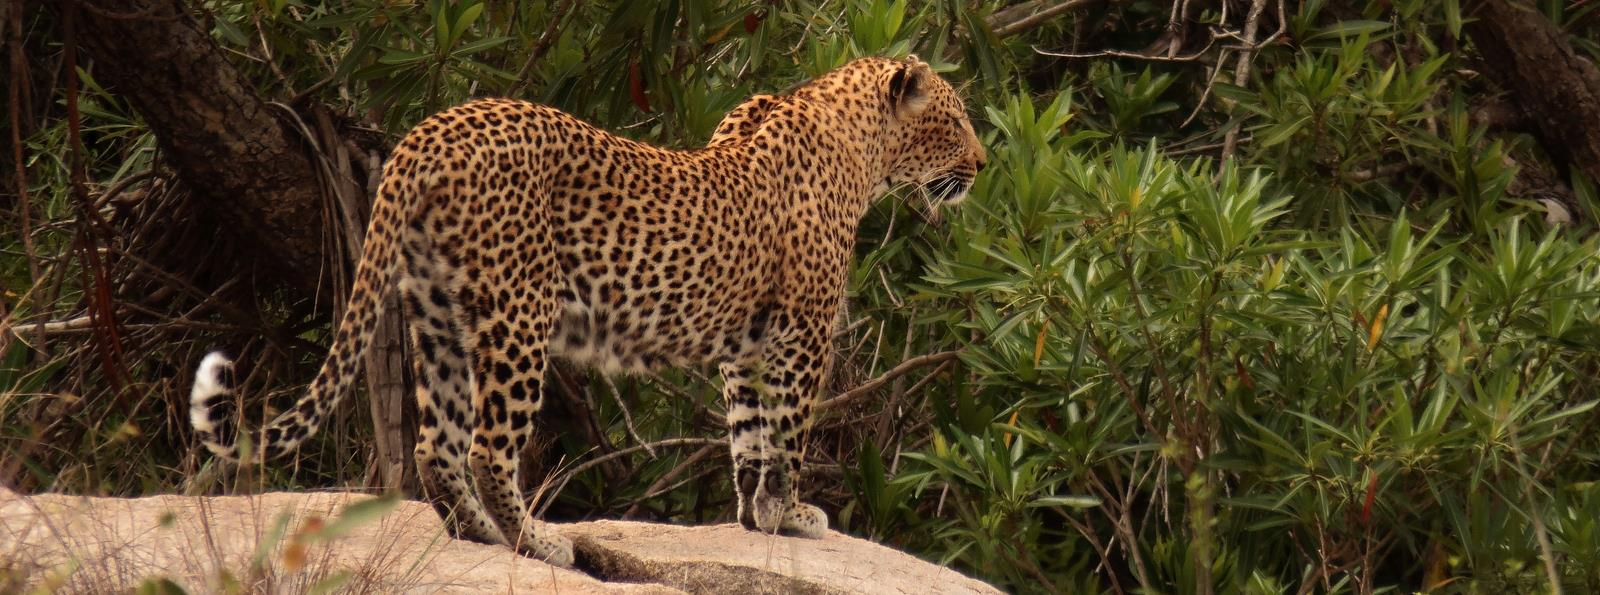 The Greater Kruger Park is the best place to see leopards in South Africa.